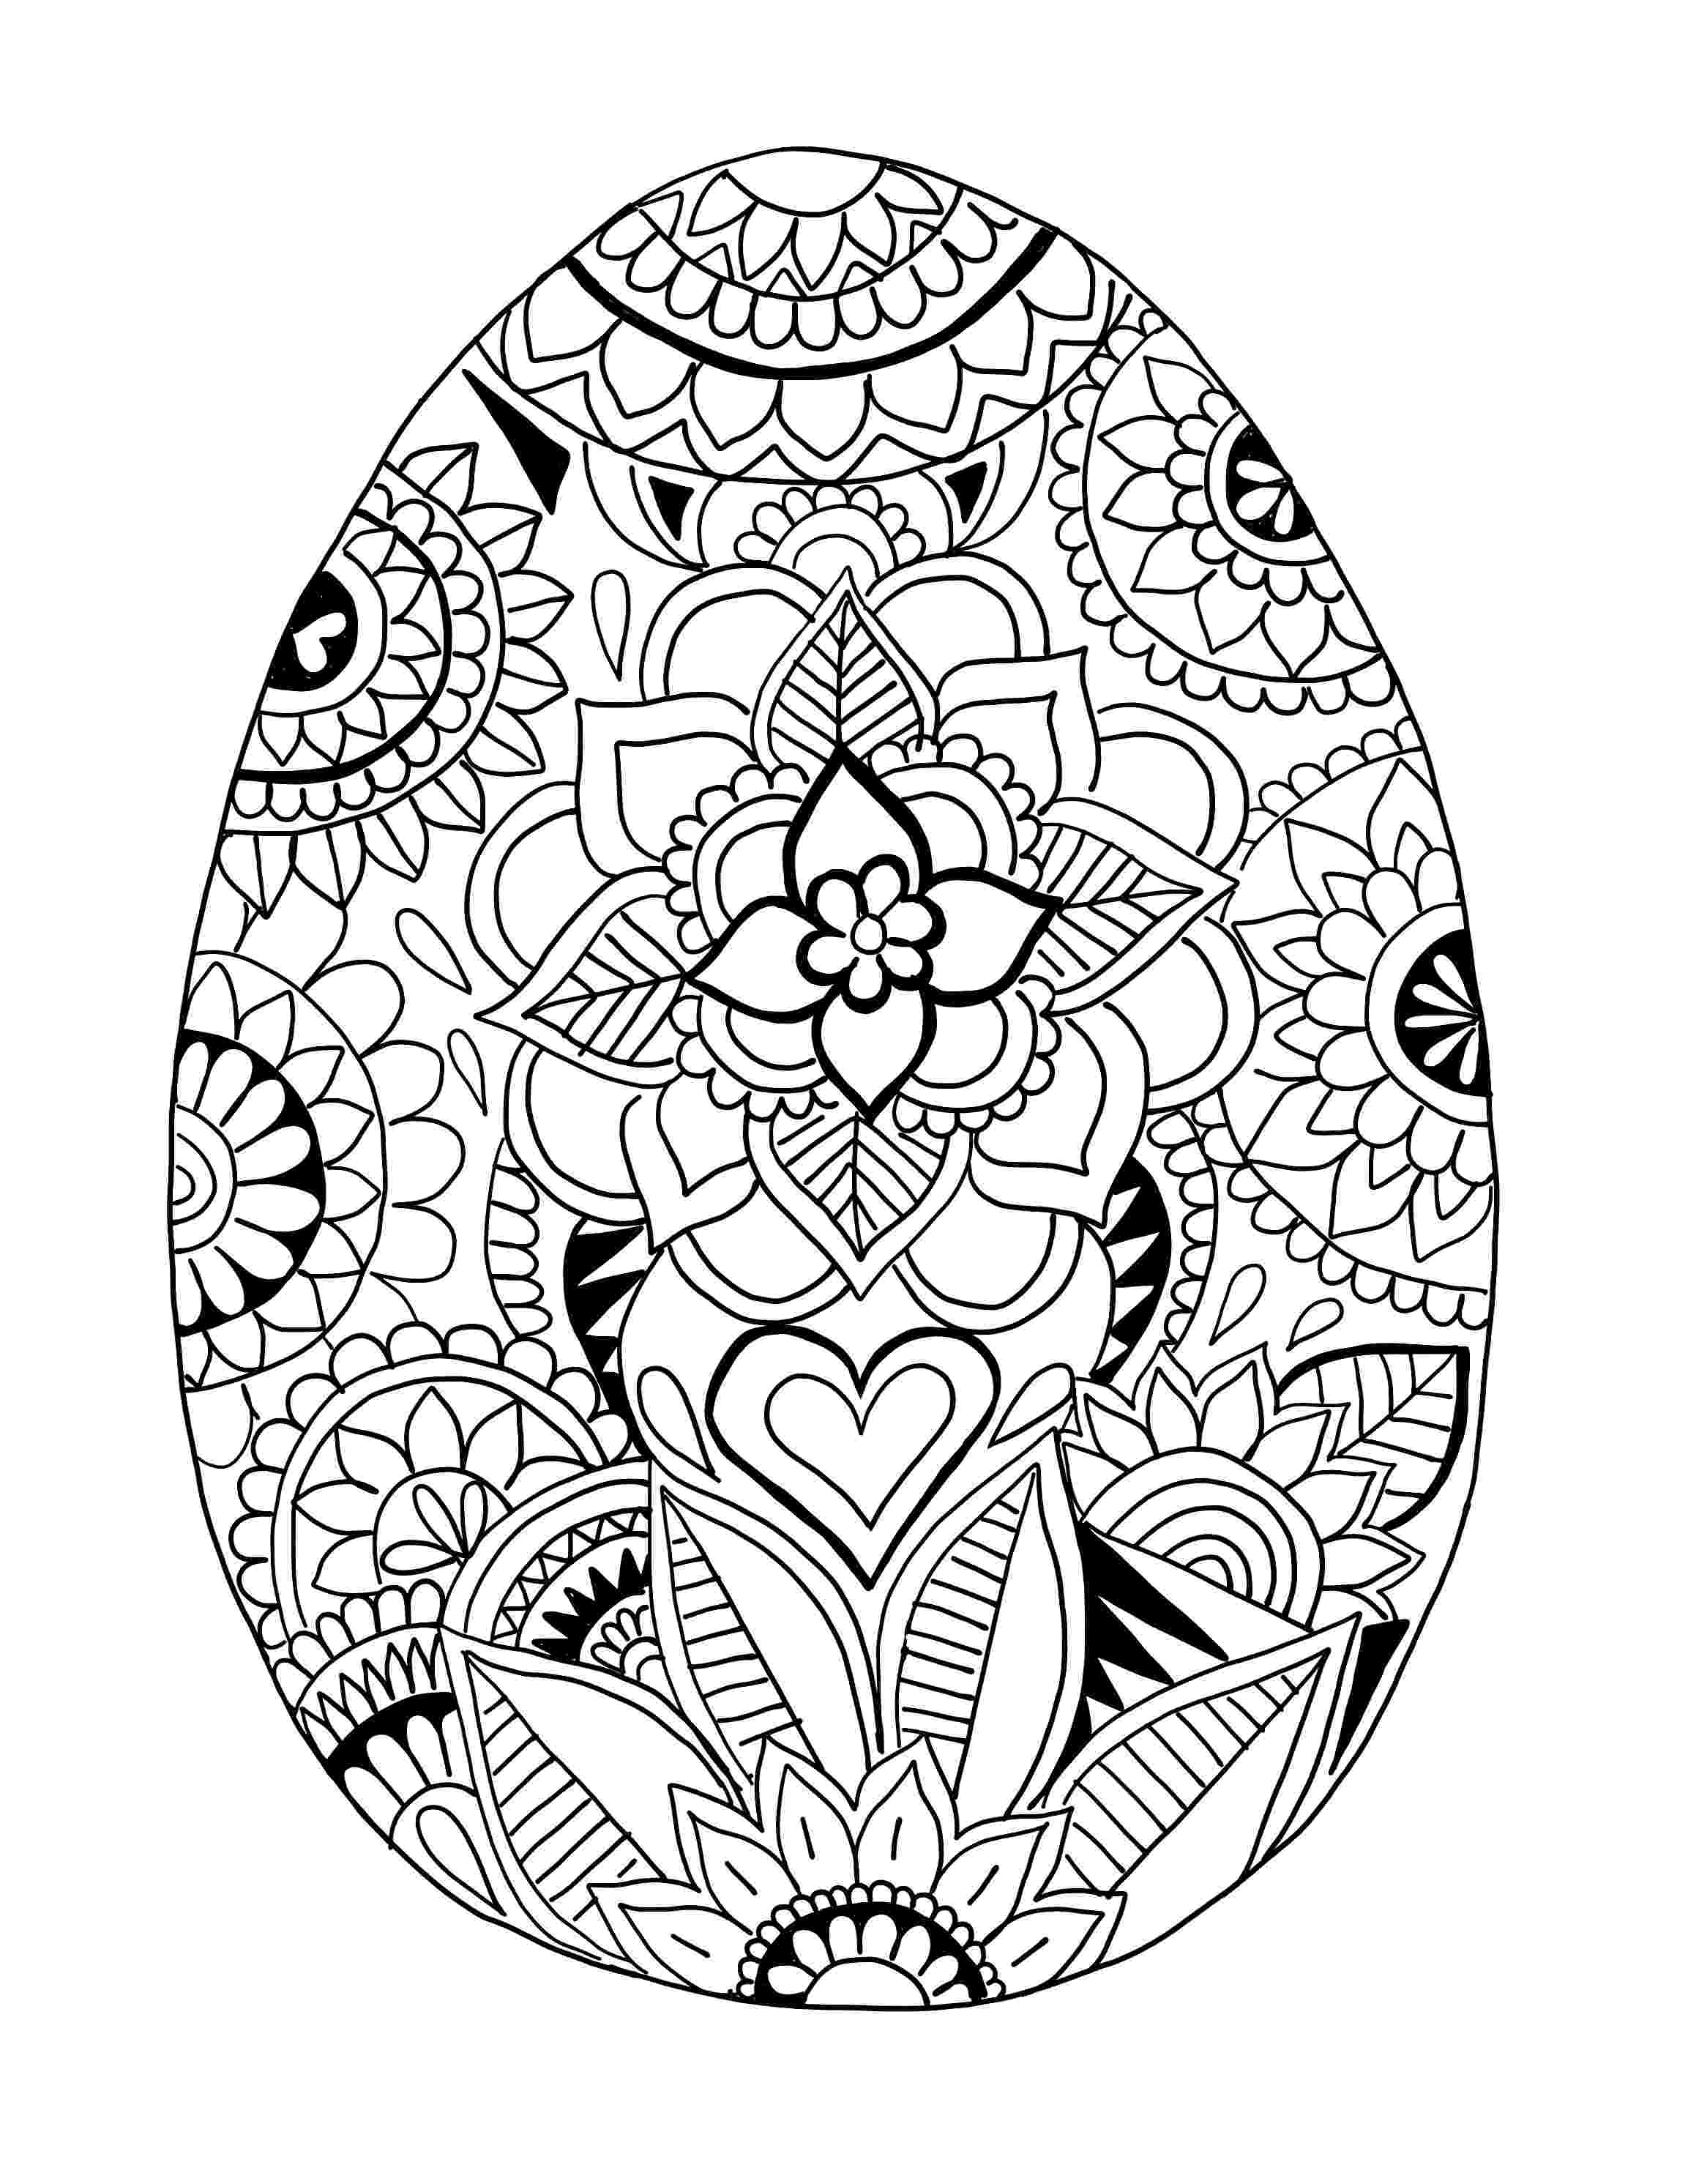 egg coloring pages free printable easter egg coloring pages for kids egg coloring pages